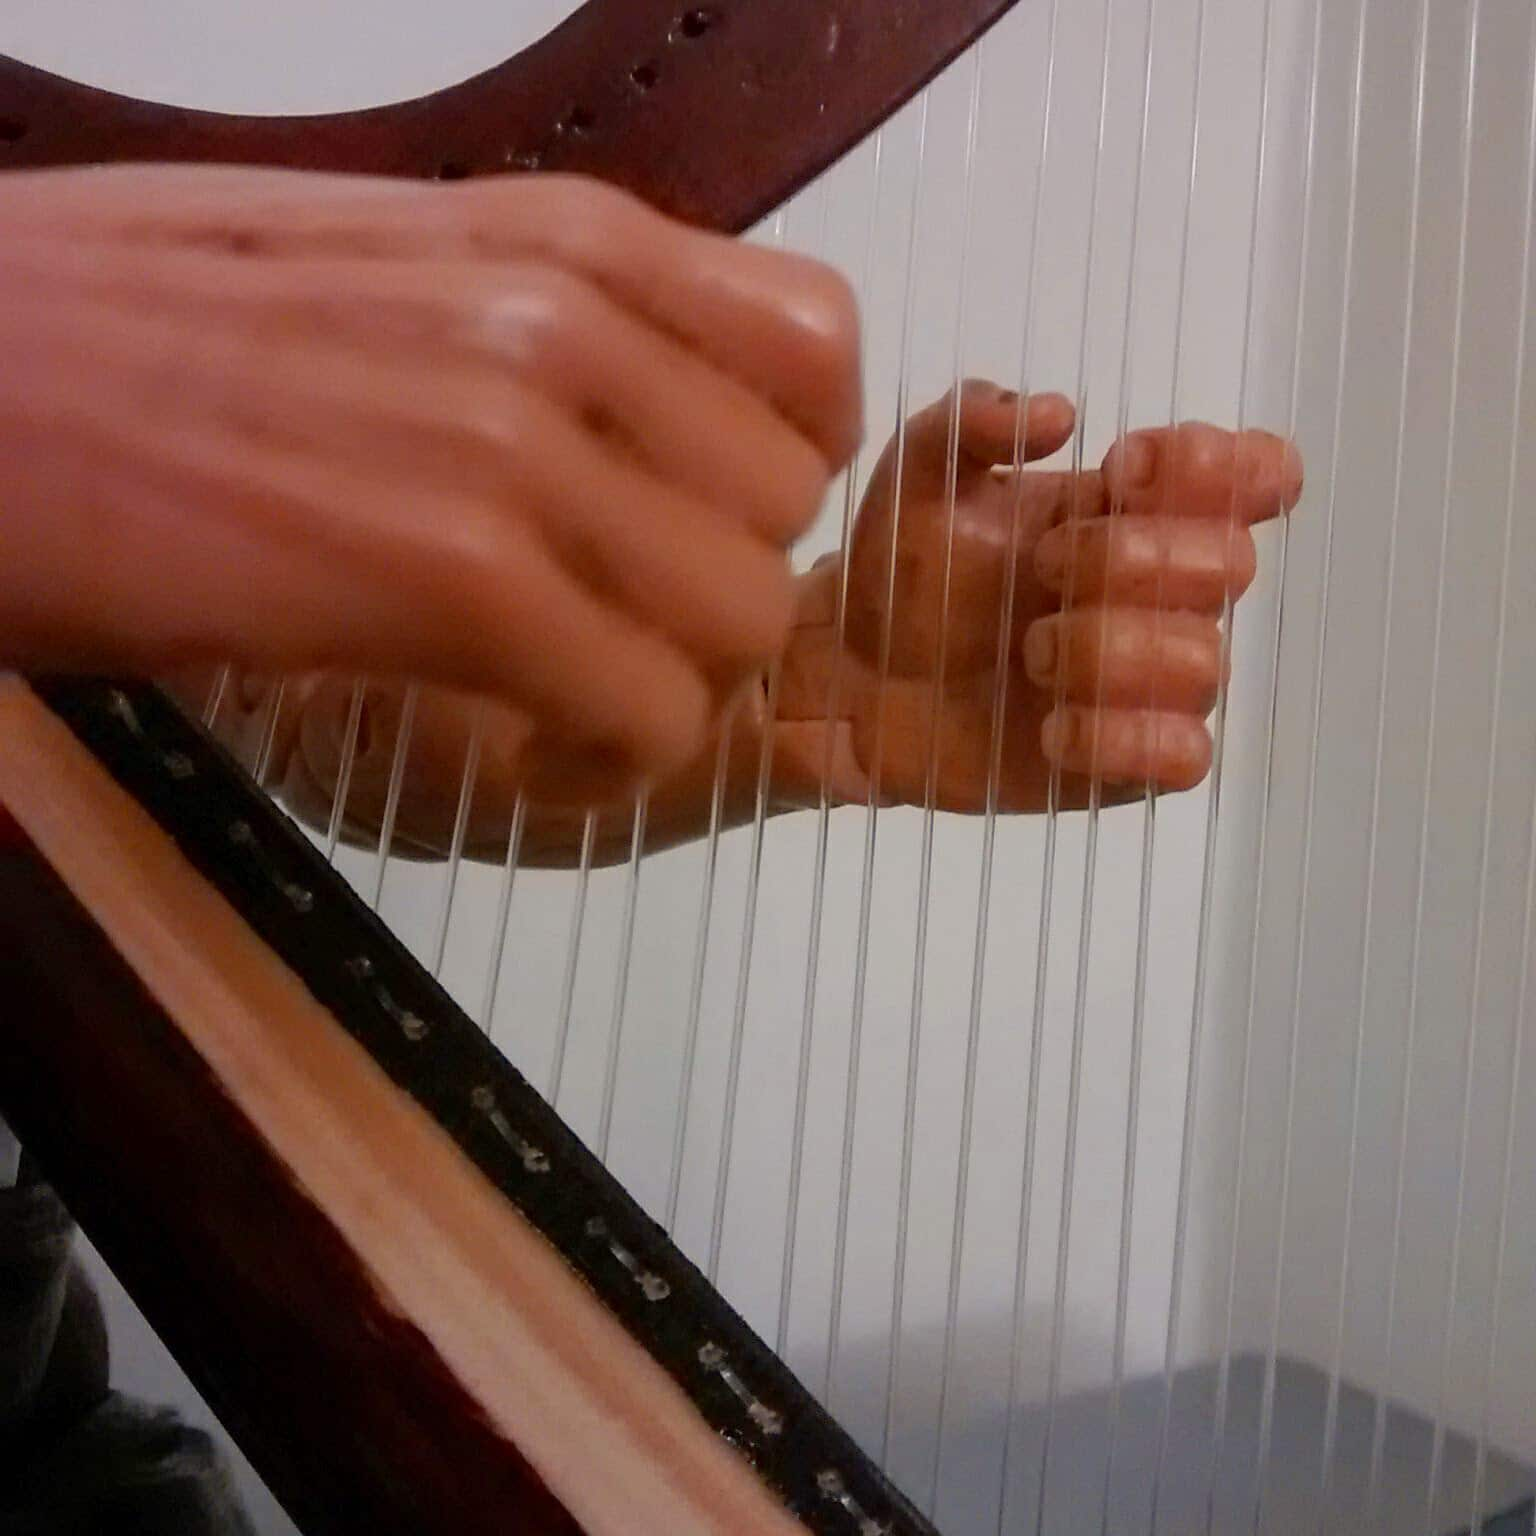 Big Hands, Little Strings